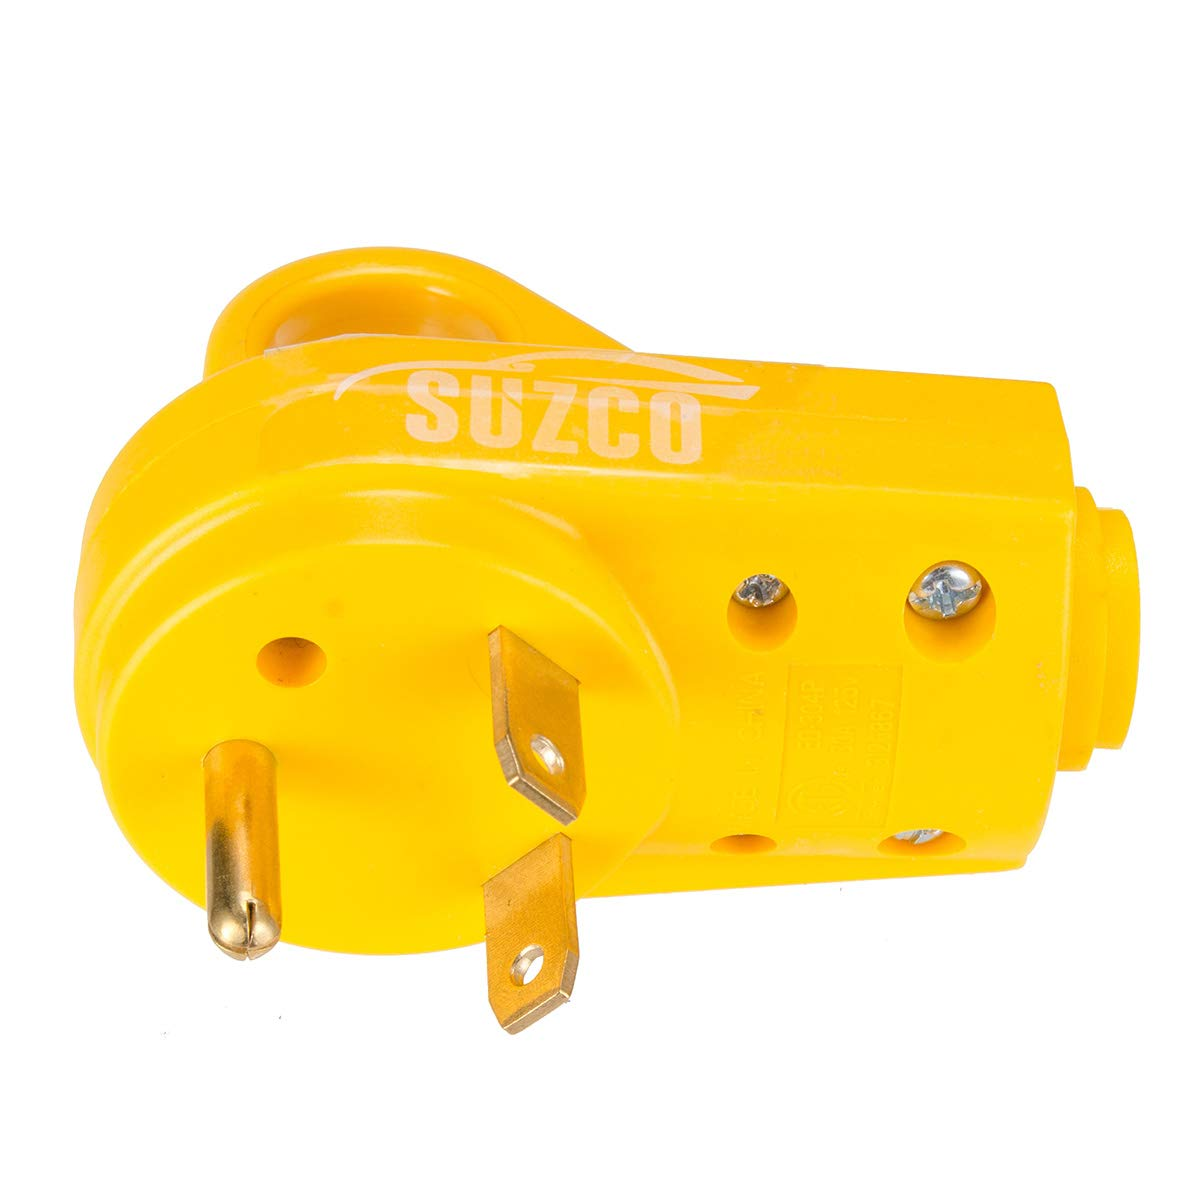 SUZCO 30 Amp RV Male Power Cord Replacement Plug End 125 Volt Repair Receptacle Grip Electrical Plug